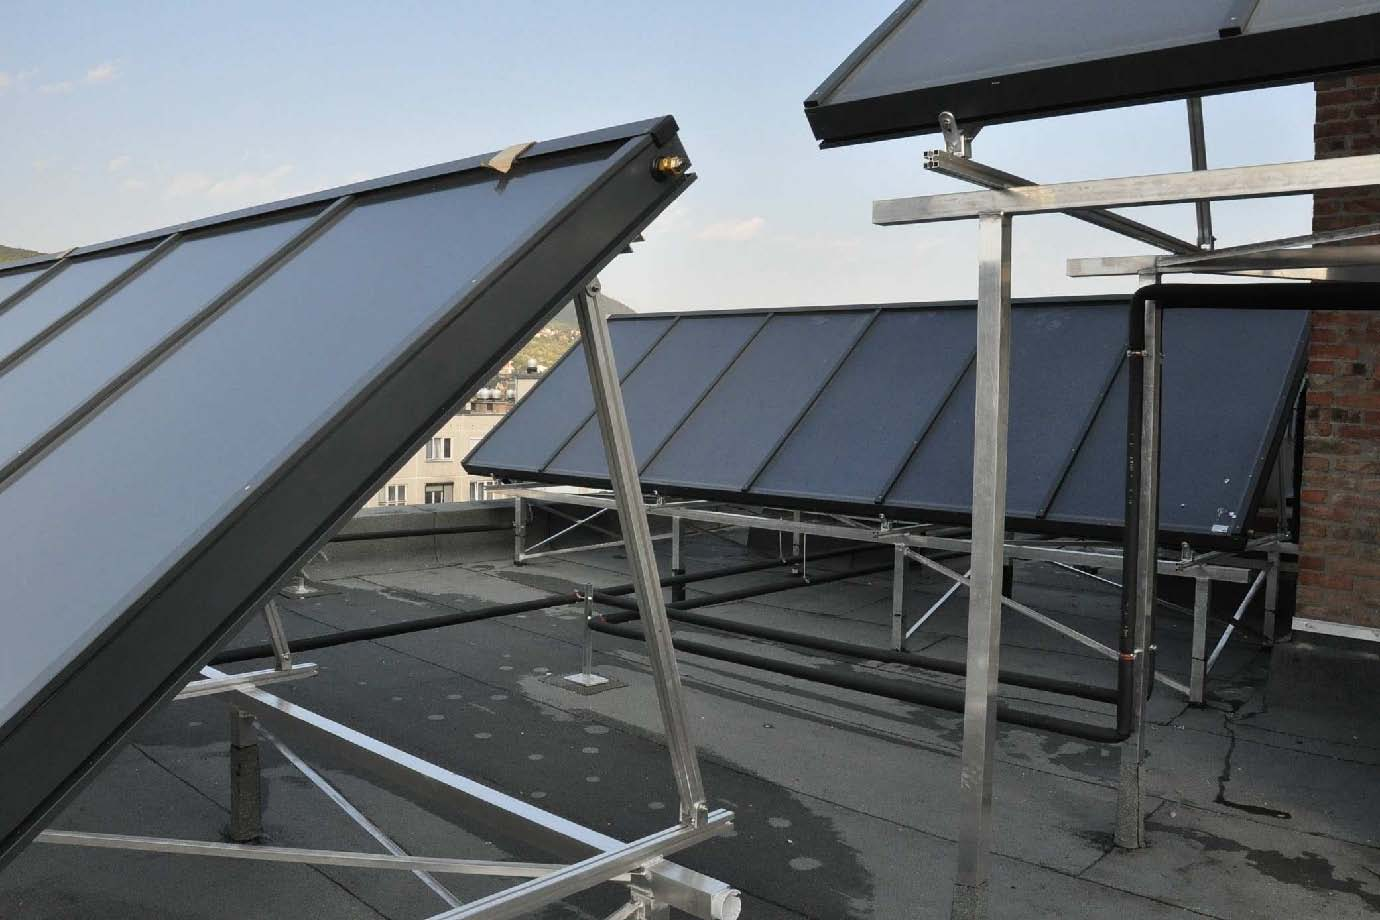 Picture 2 – The solar   thermal collectors on   the roof